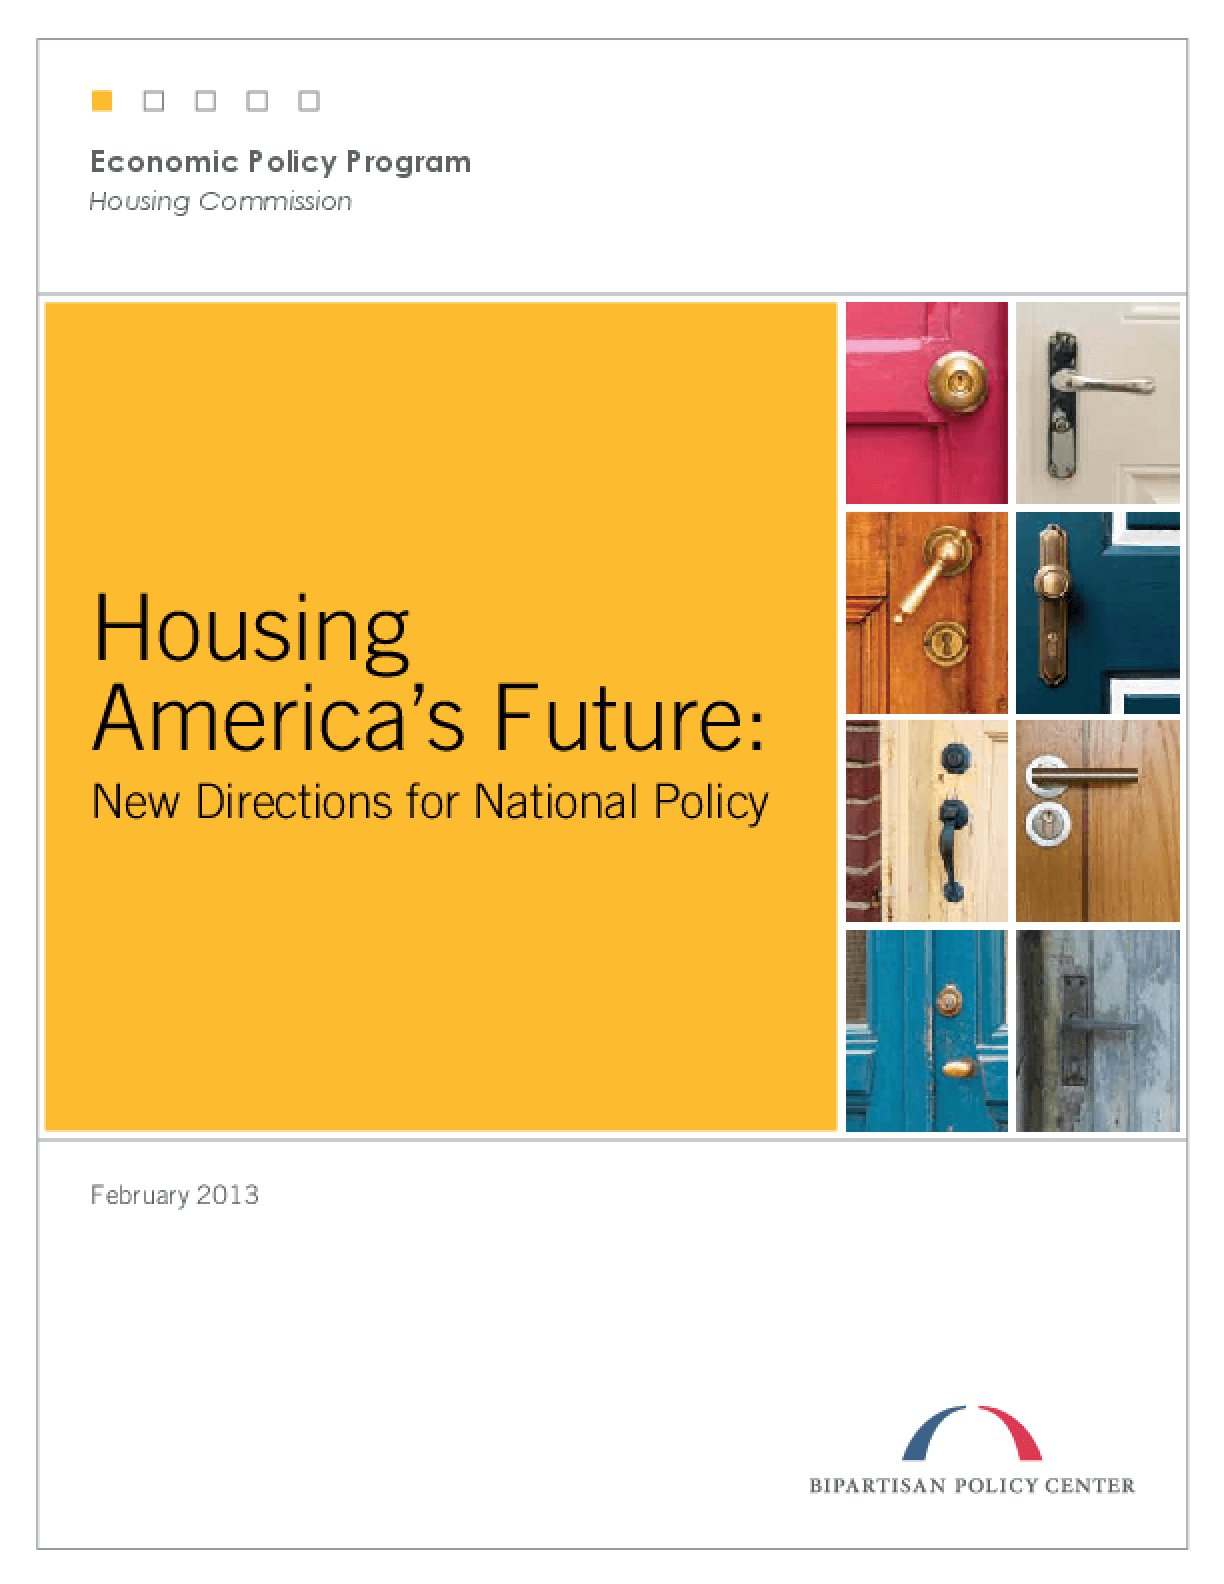 Housing America's Future: New Directions for National Policy